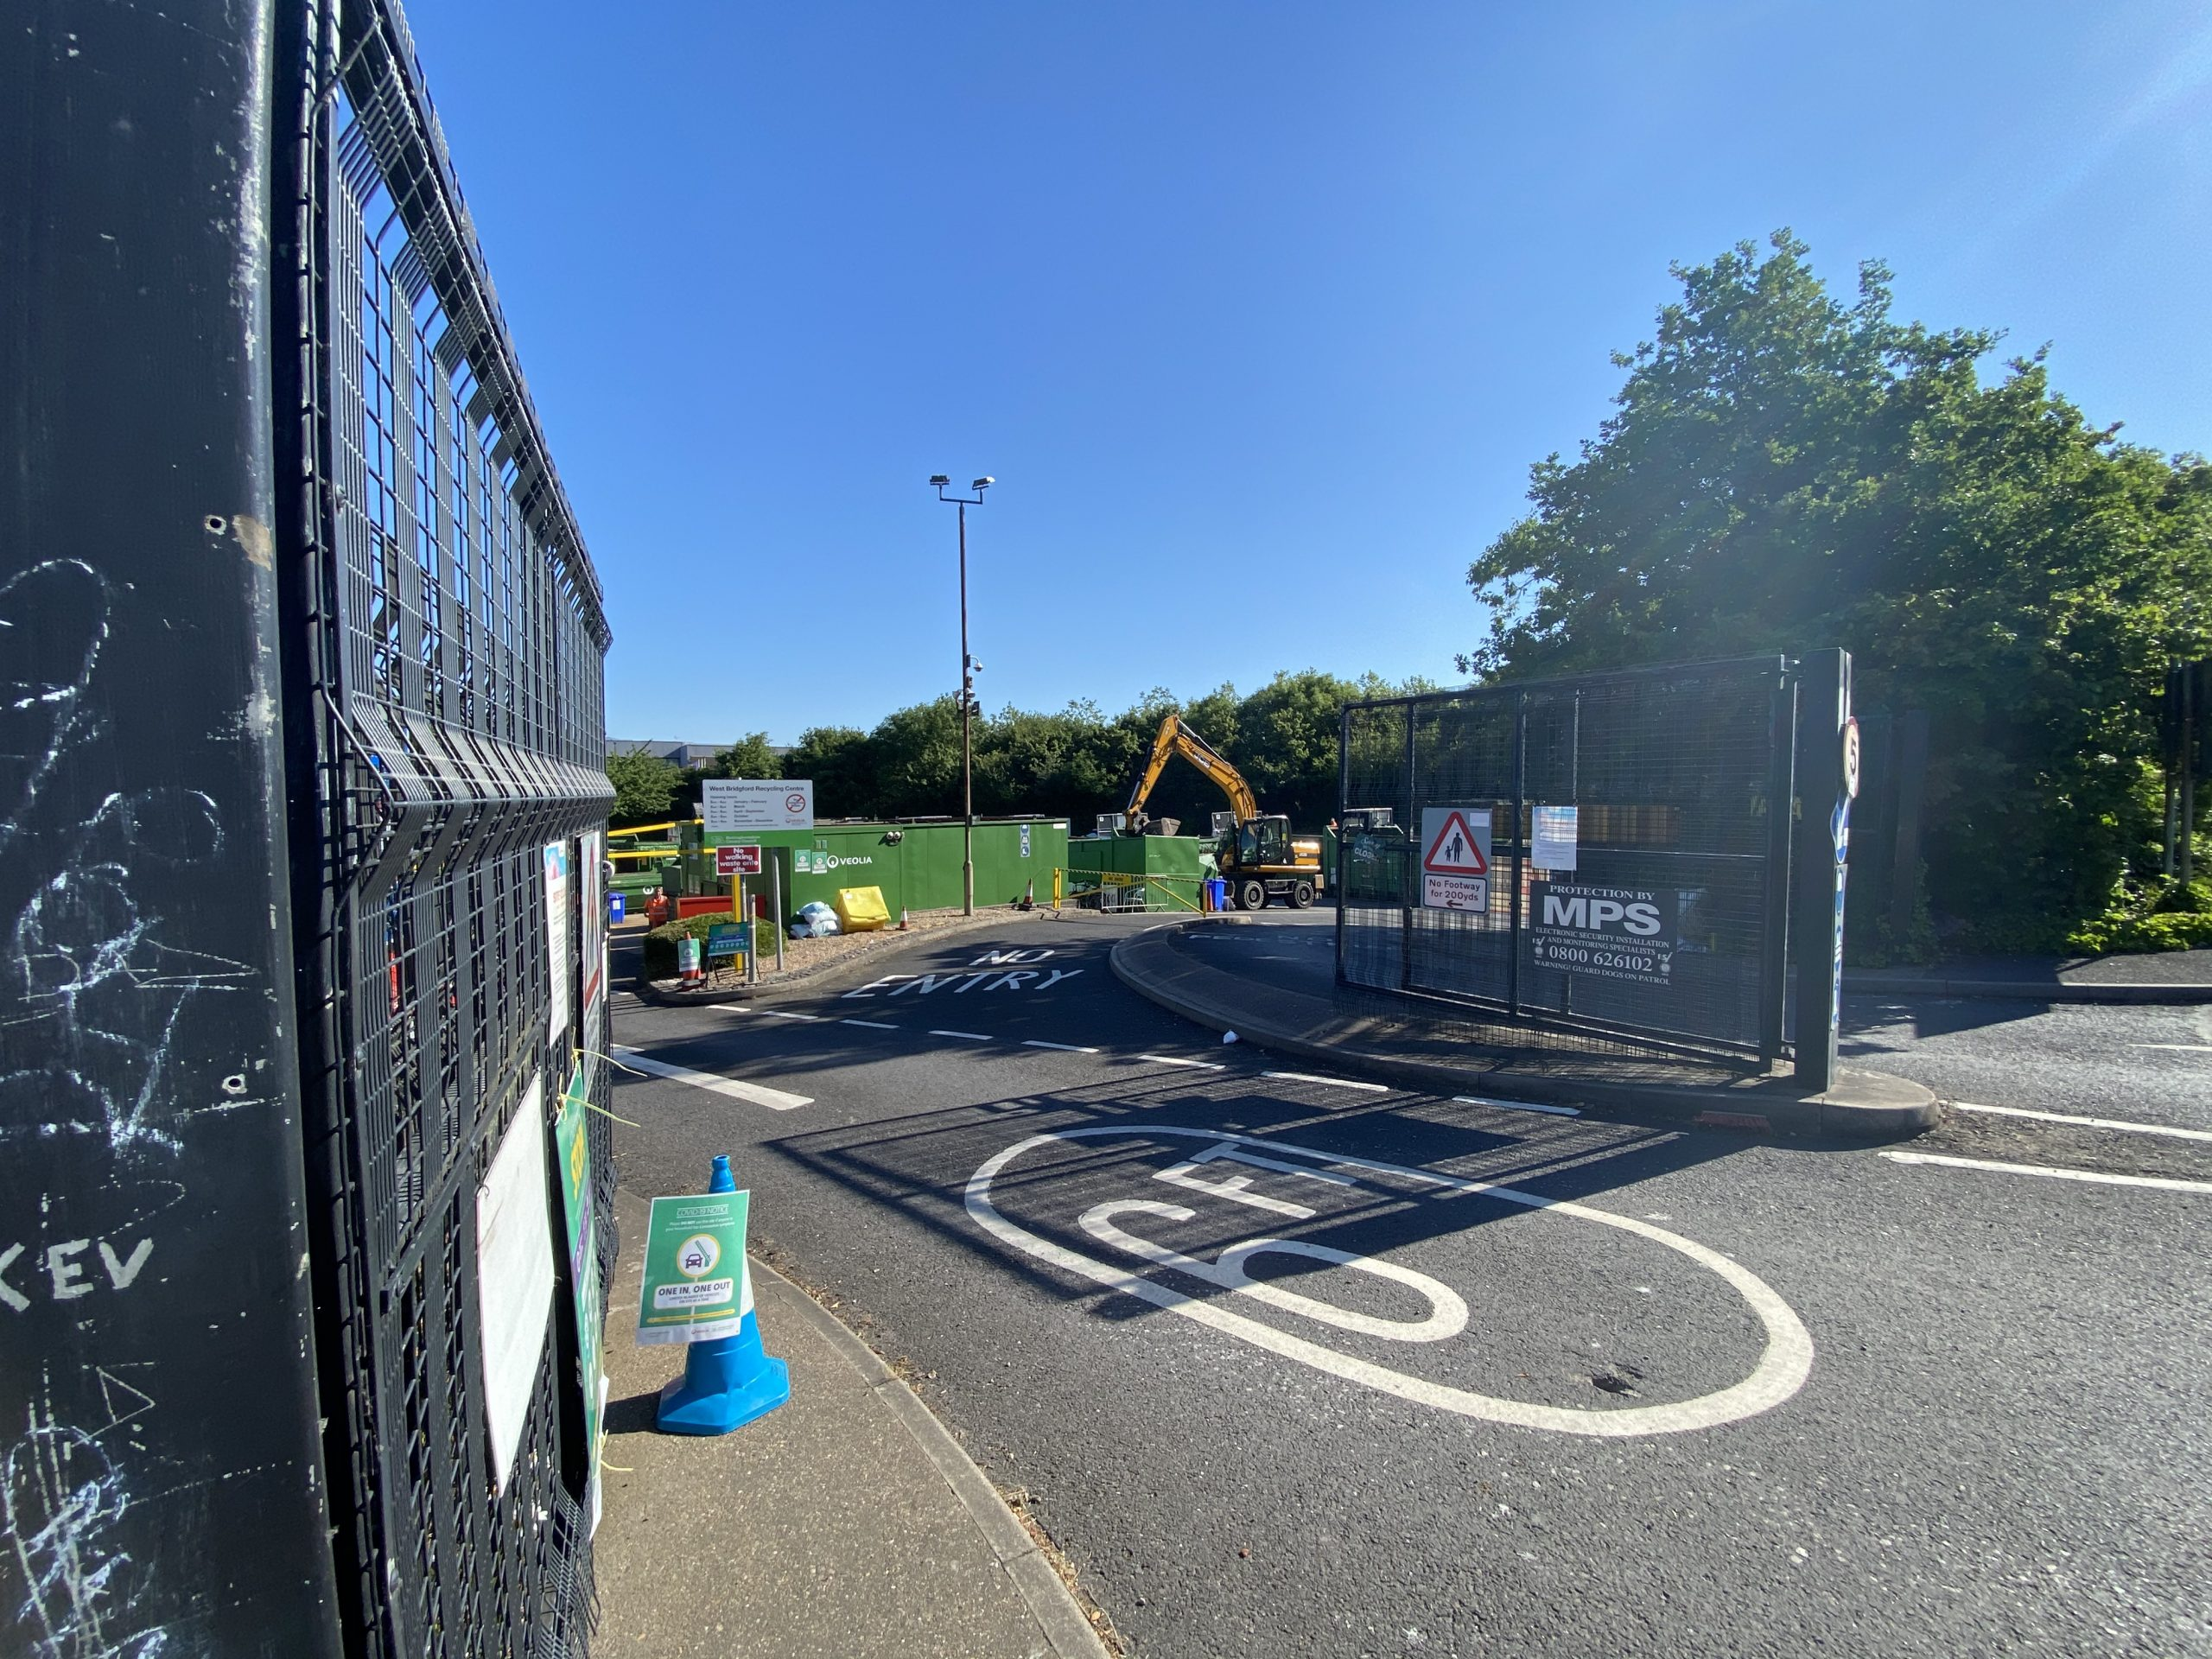 west bridgford recycling centre